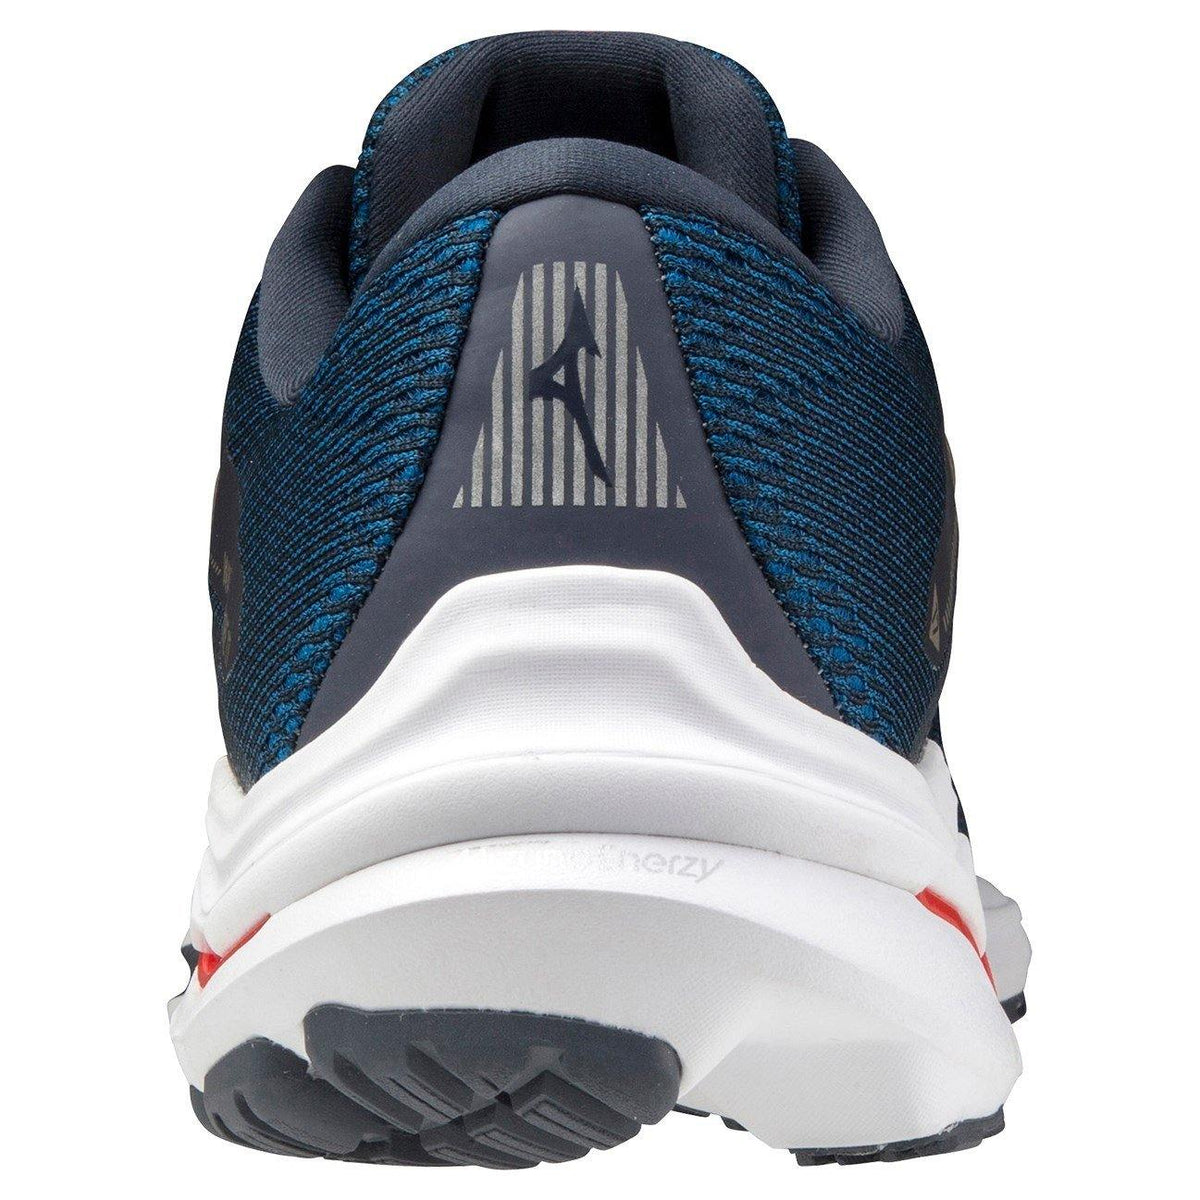 Mizuno Wave Inspire 17 Mens